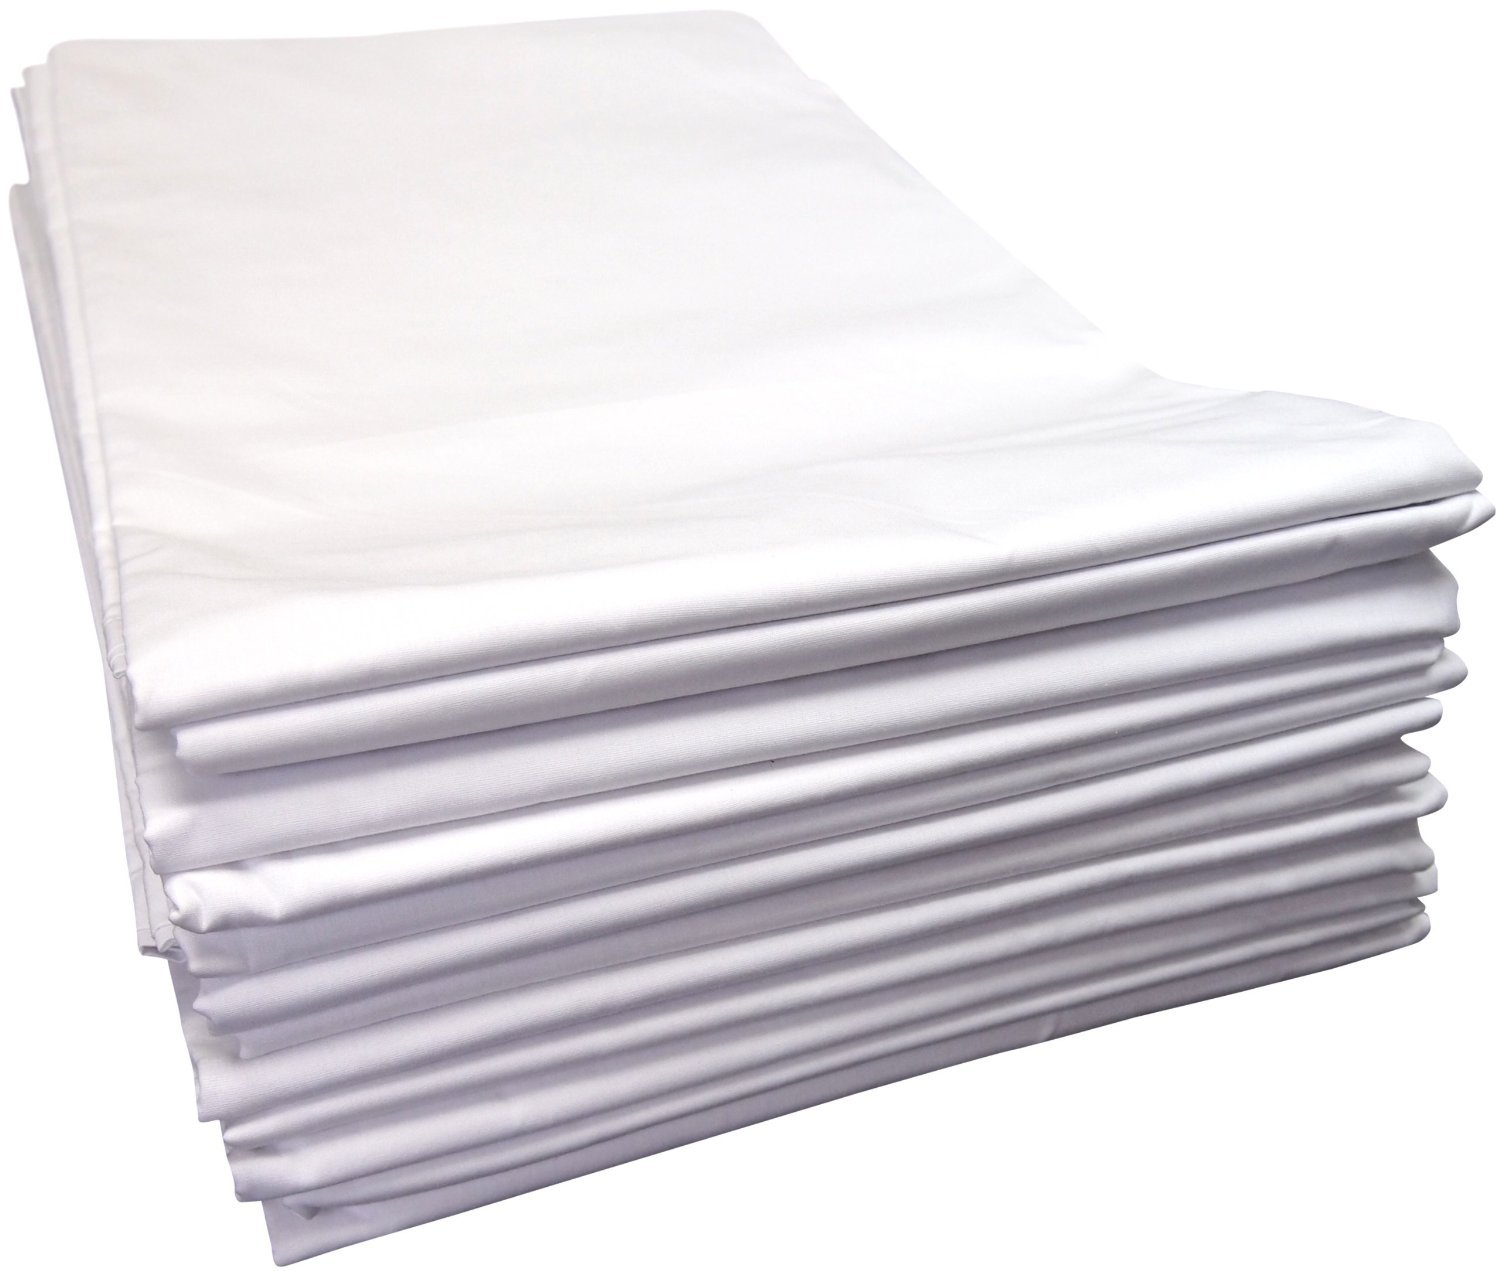 Linteum Textile Supply SPA & MASSAGE TWIN FLAT SHEETS 250 Thread Count 66x108 in. 12-Pack White